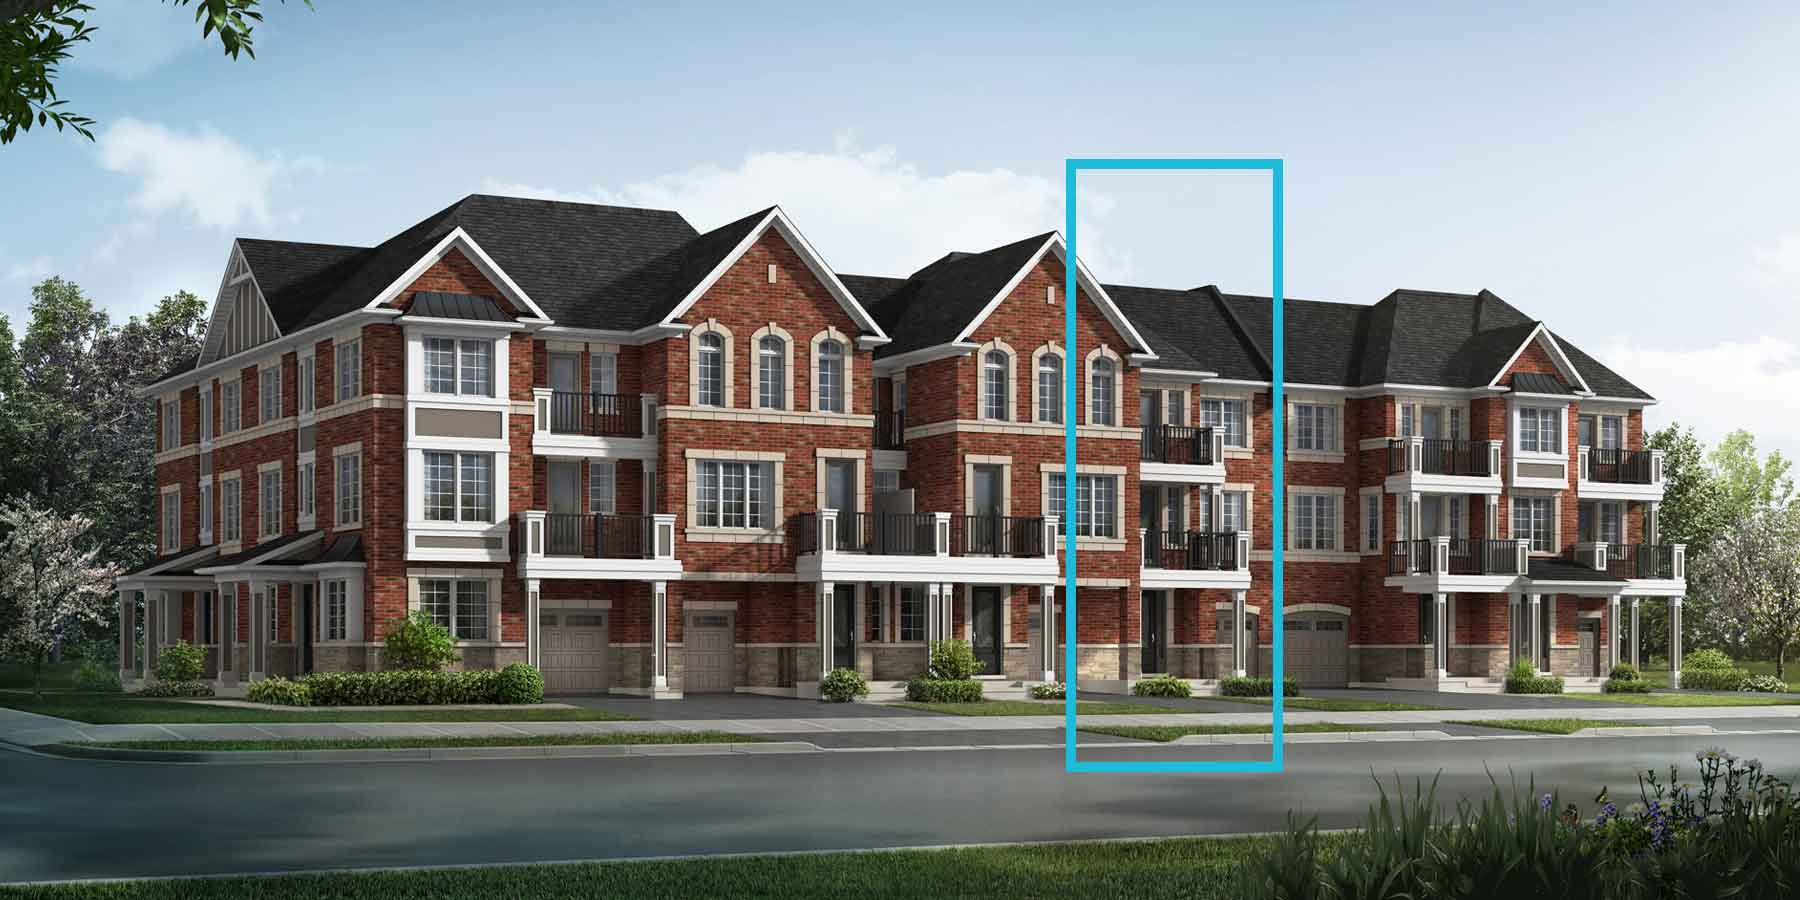 Daffodil Plan traditional_springwater_daffodil_main at Springwater in Markham Ontario by Mattamy Homes